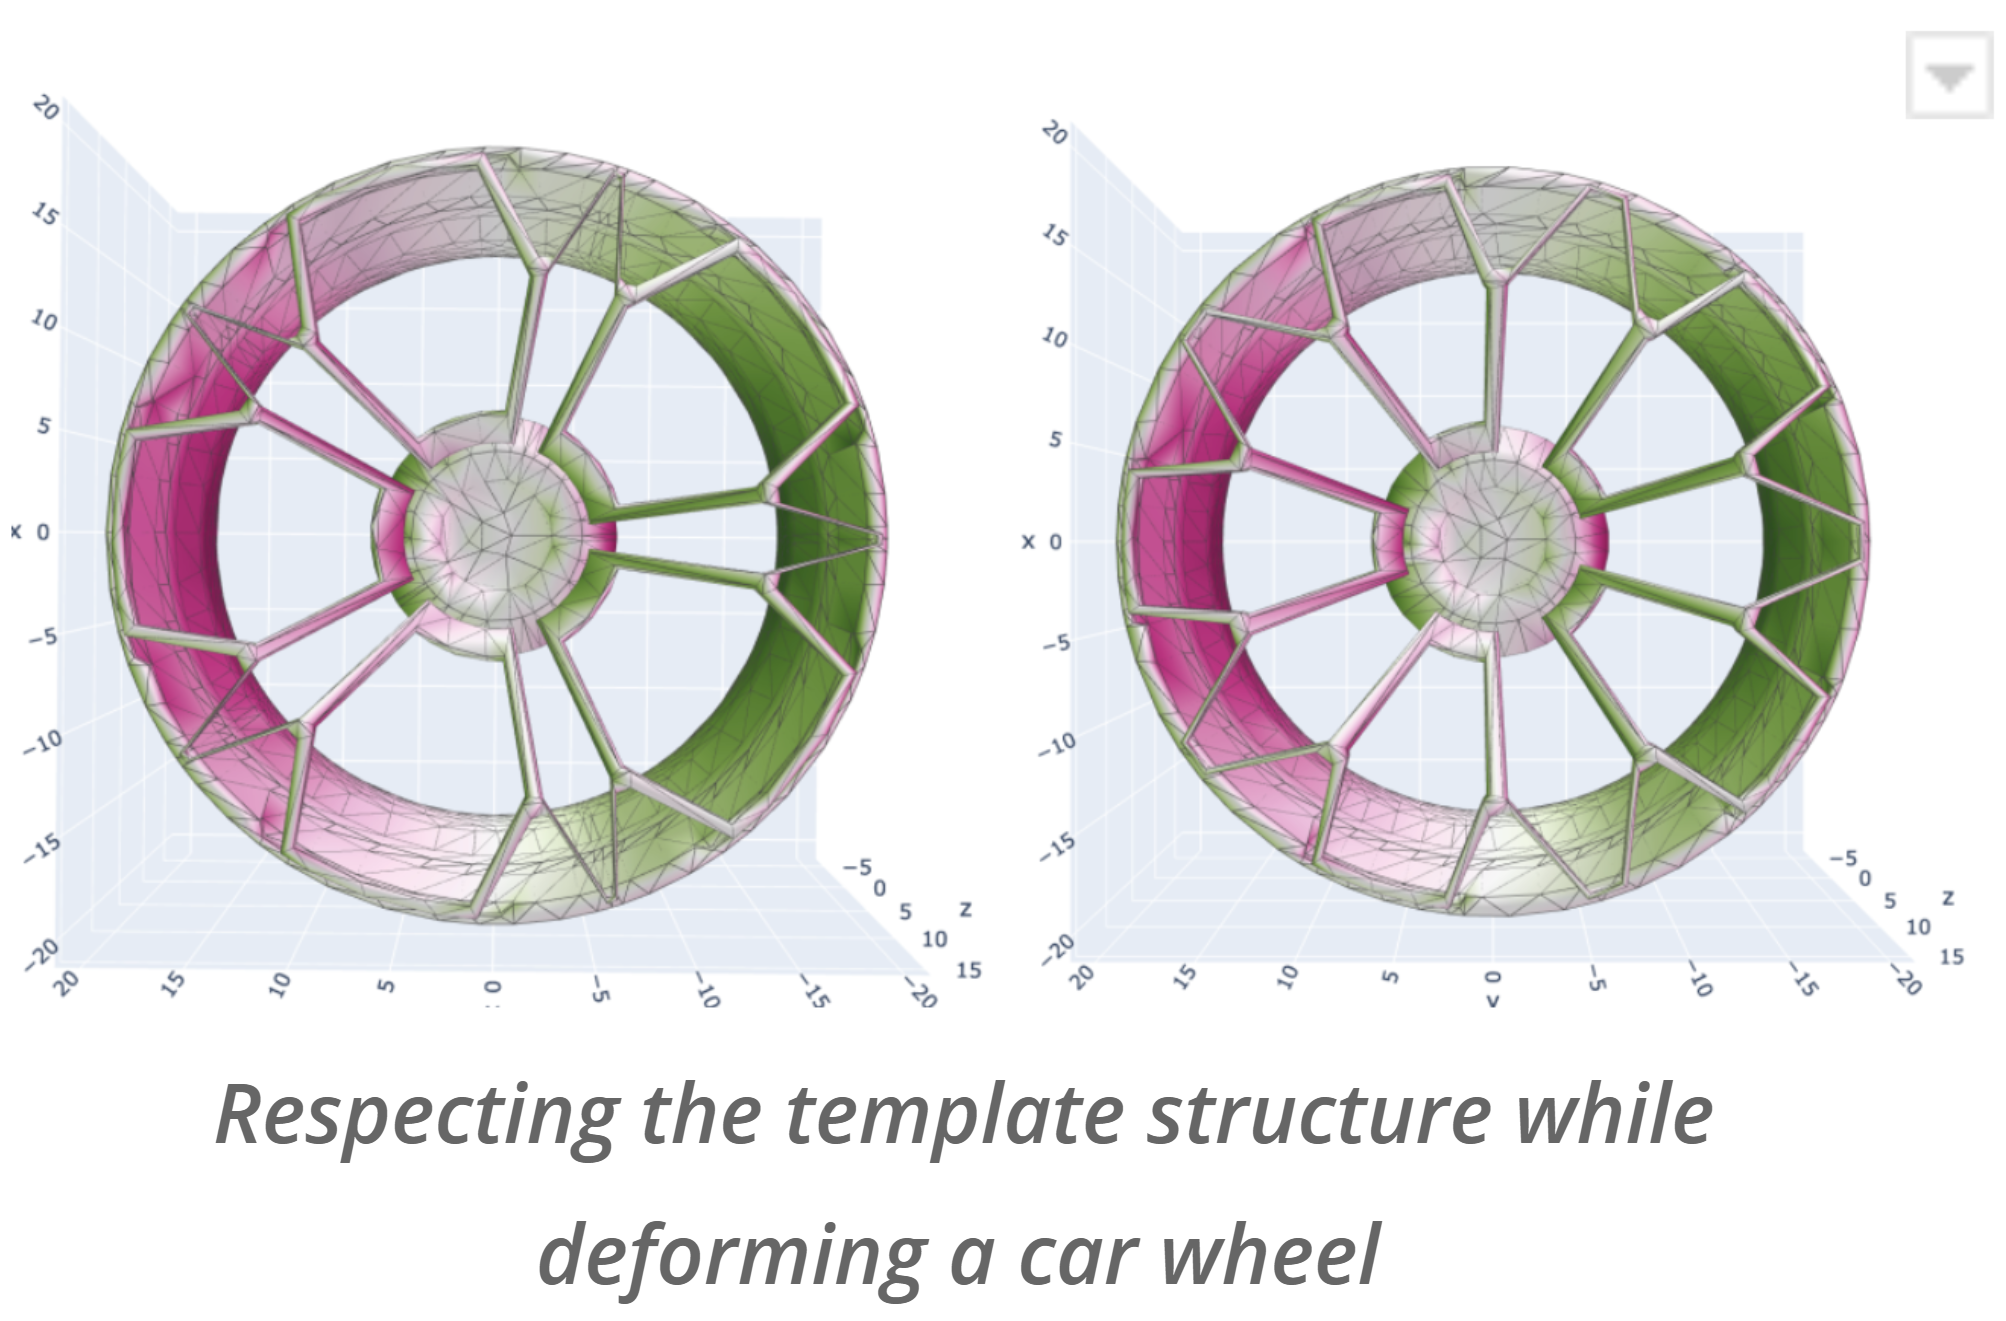 Respecting the template structure while deforming a car wheel